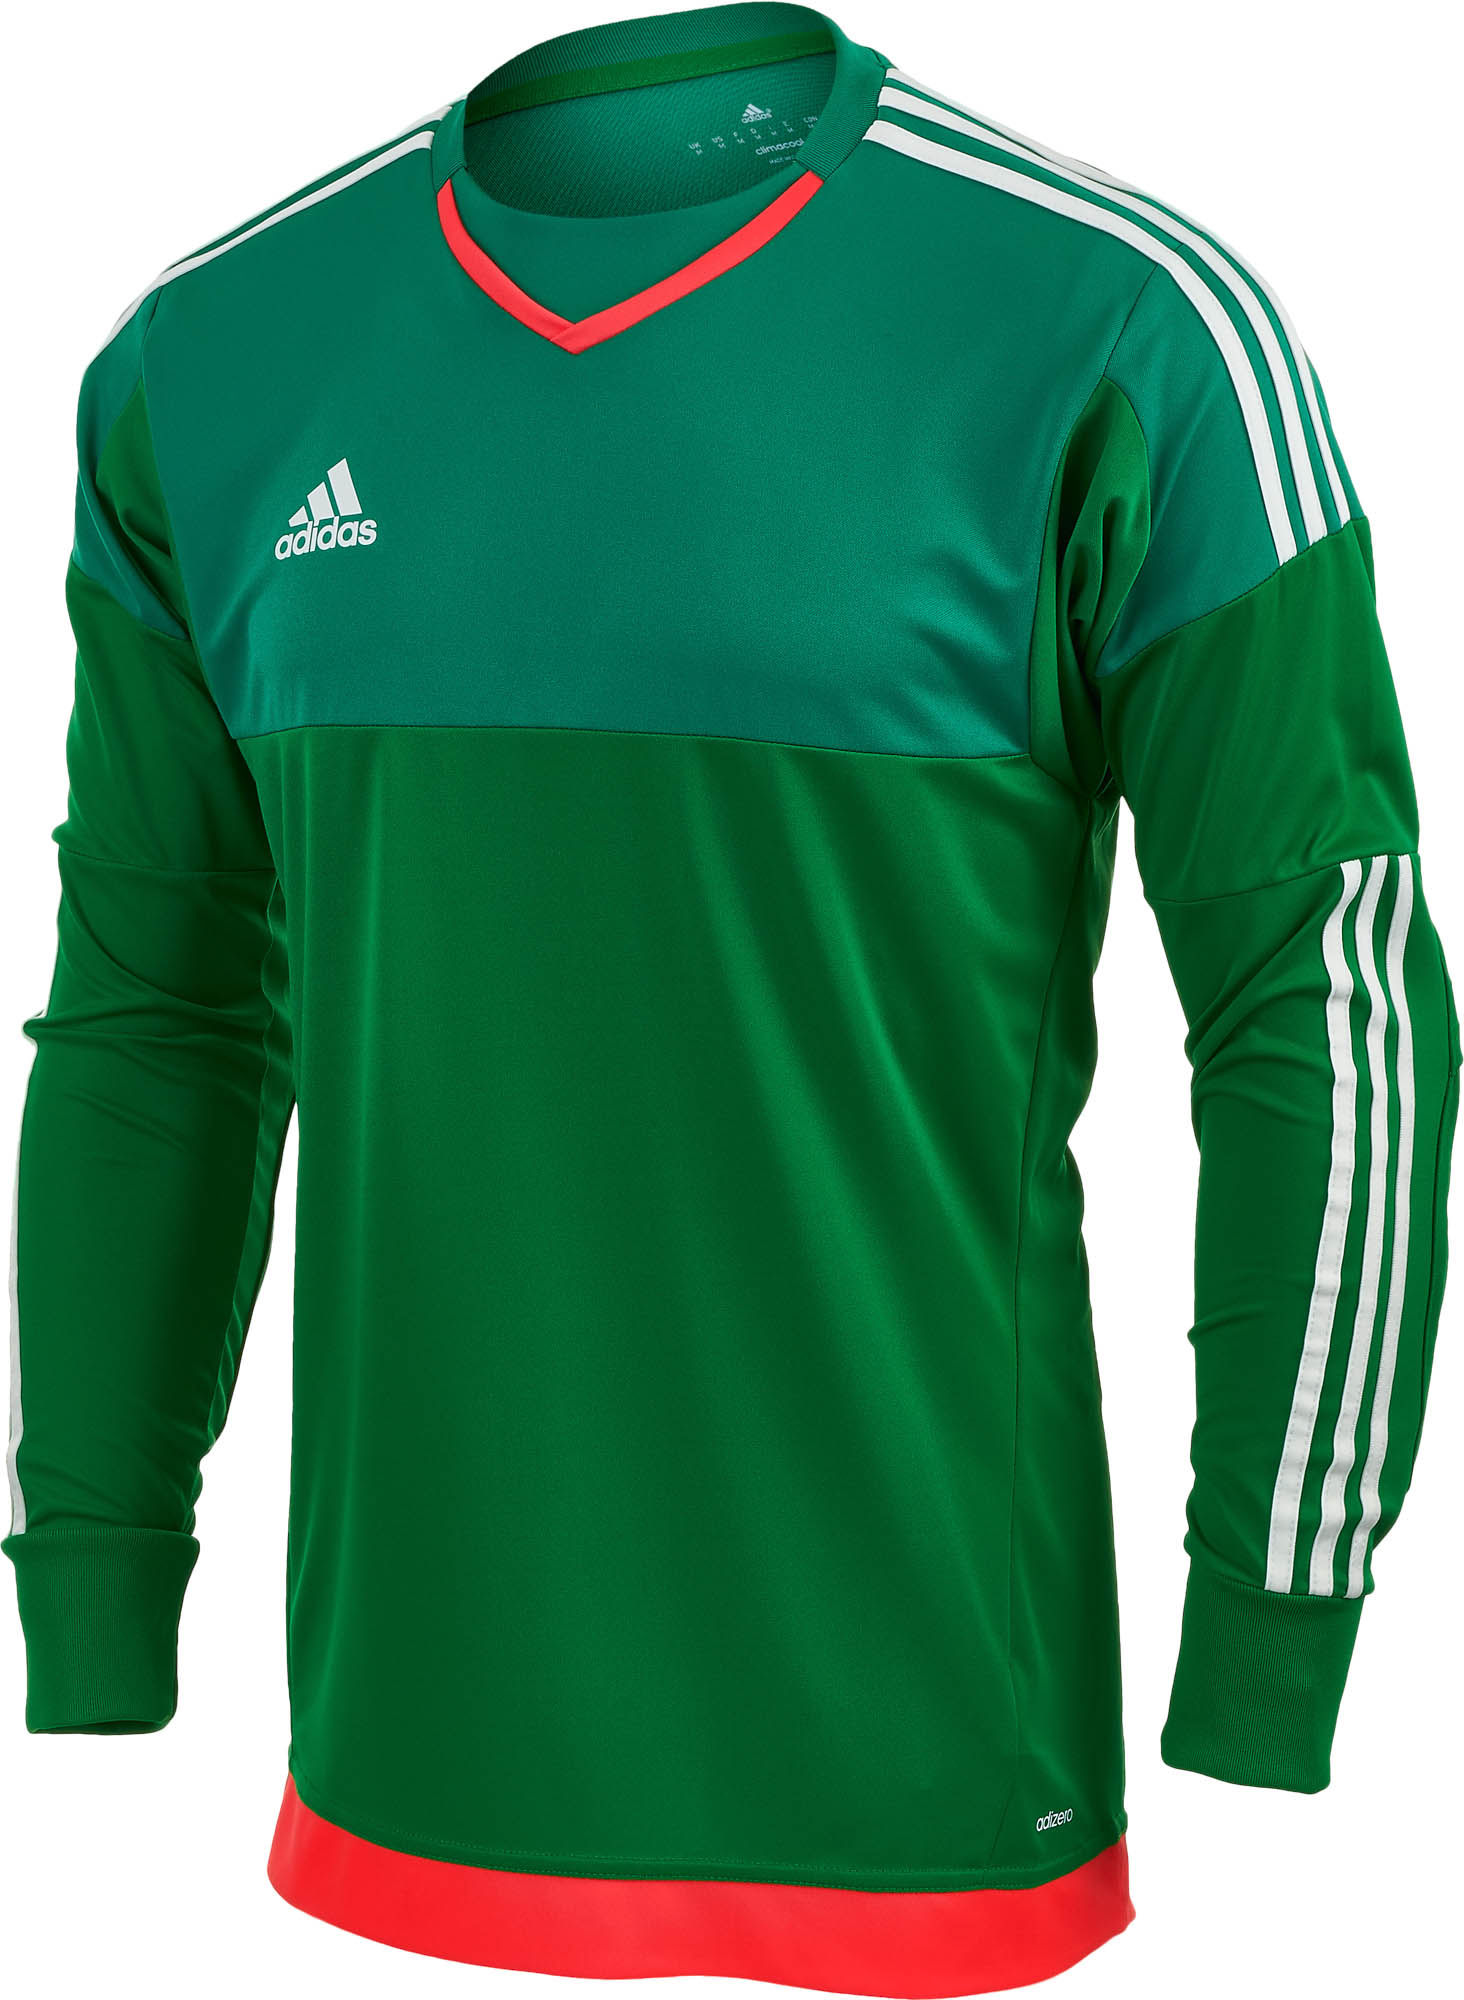 f38a2d68a adidas Top Goalkeeper Jersey - Green and White - Soccer Master